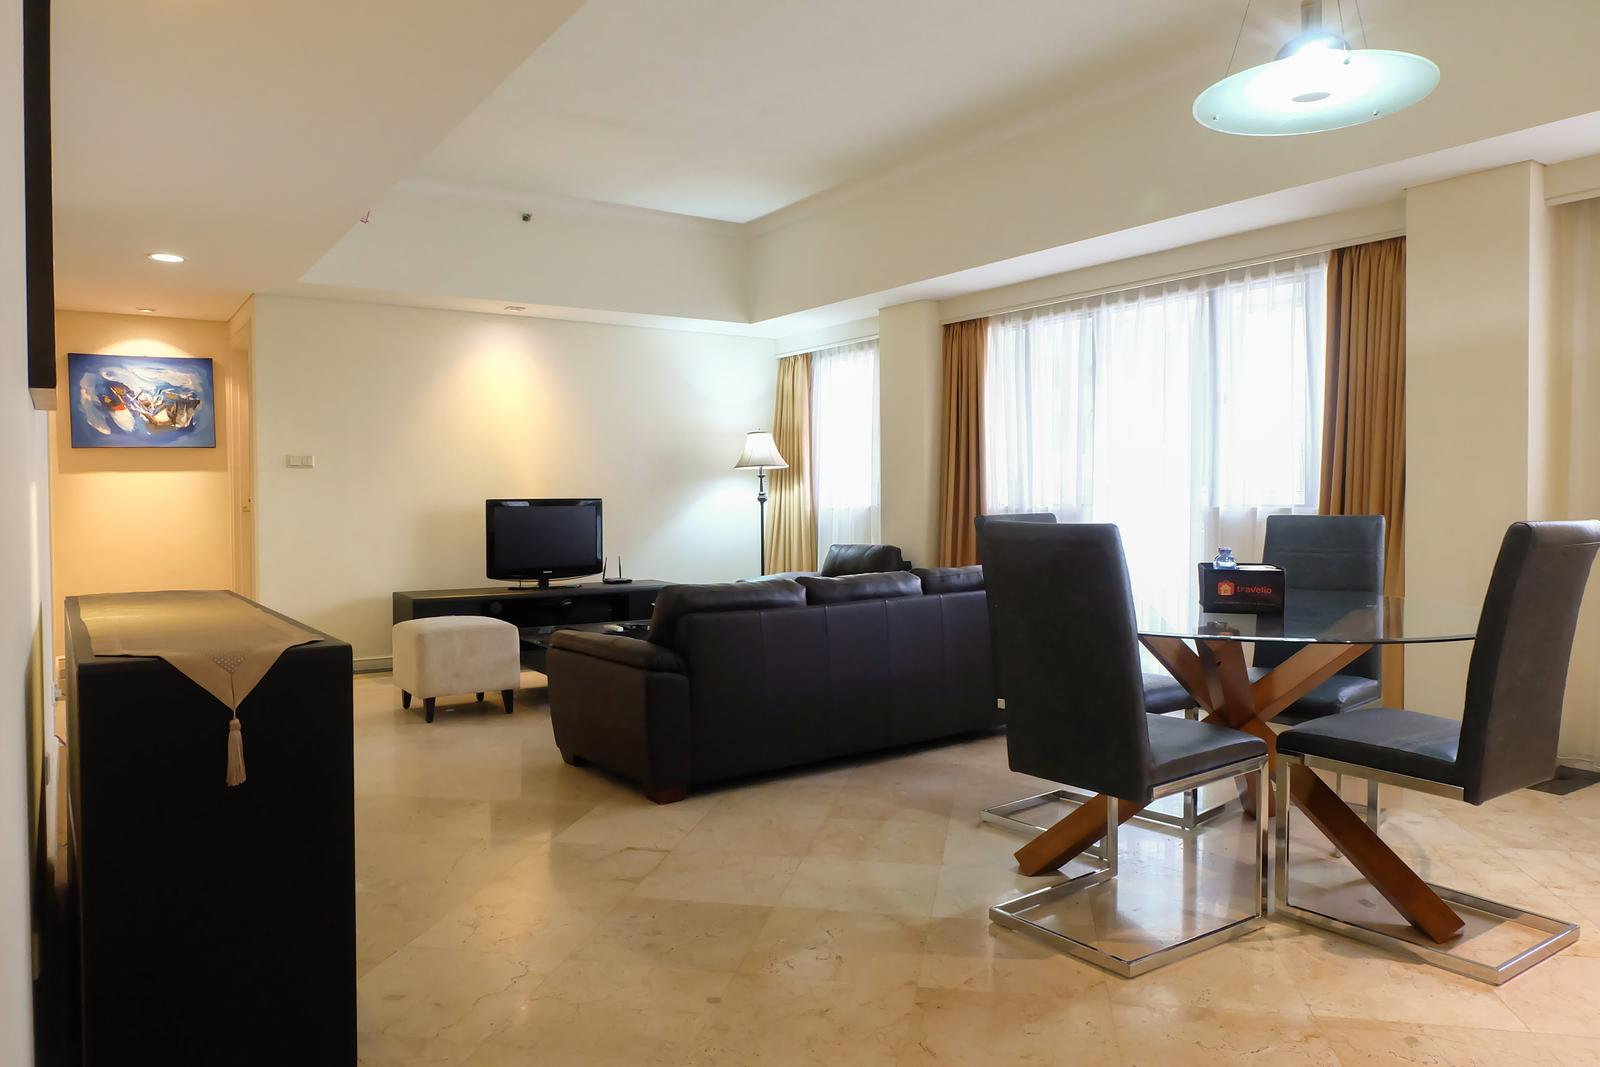 Setiabudi Apartment Jakarta - 2BR Exclusive Central Location Apartment Near Setiabudi One By Travelio